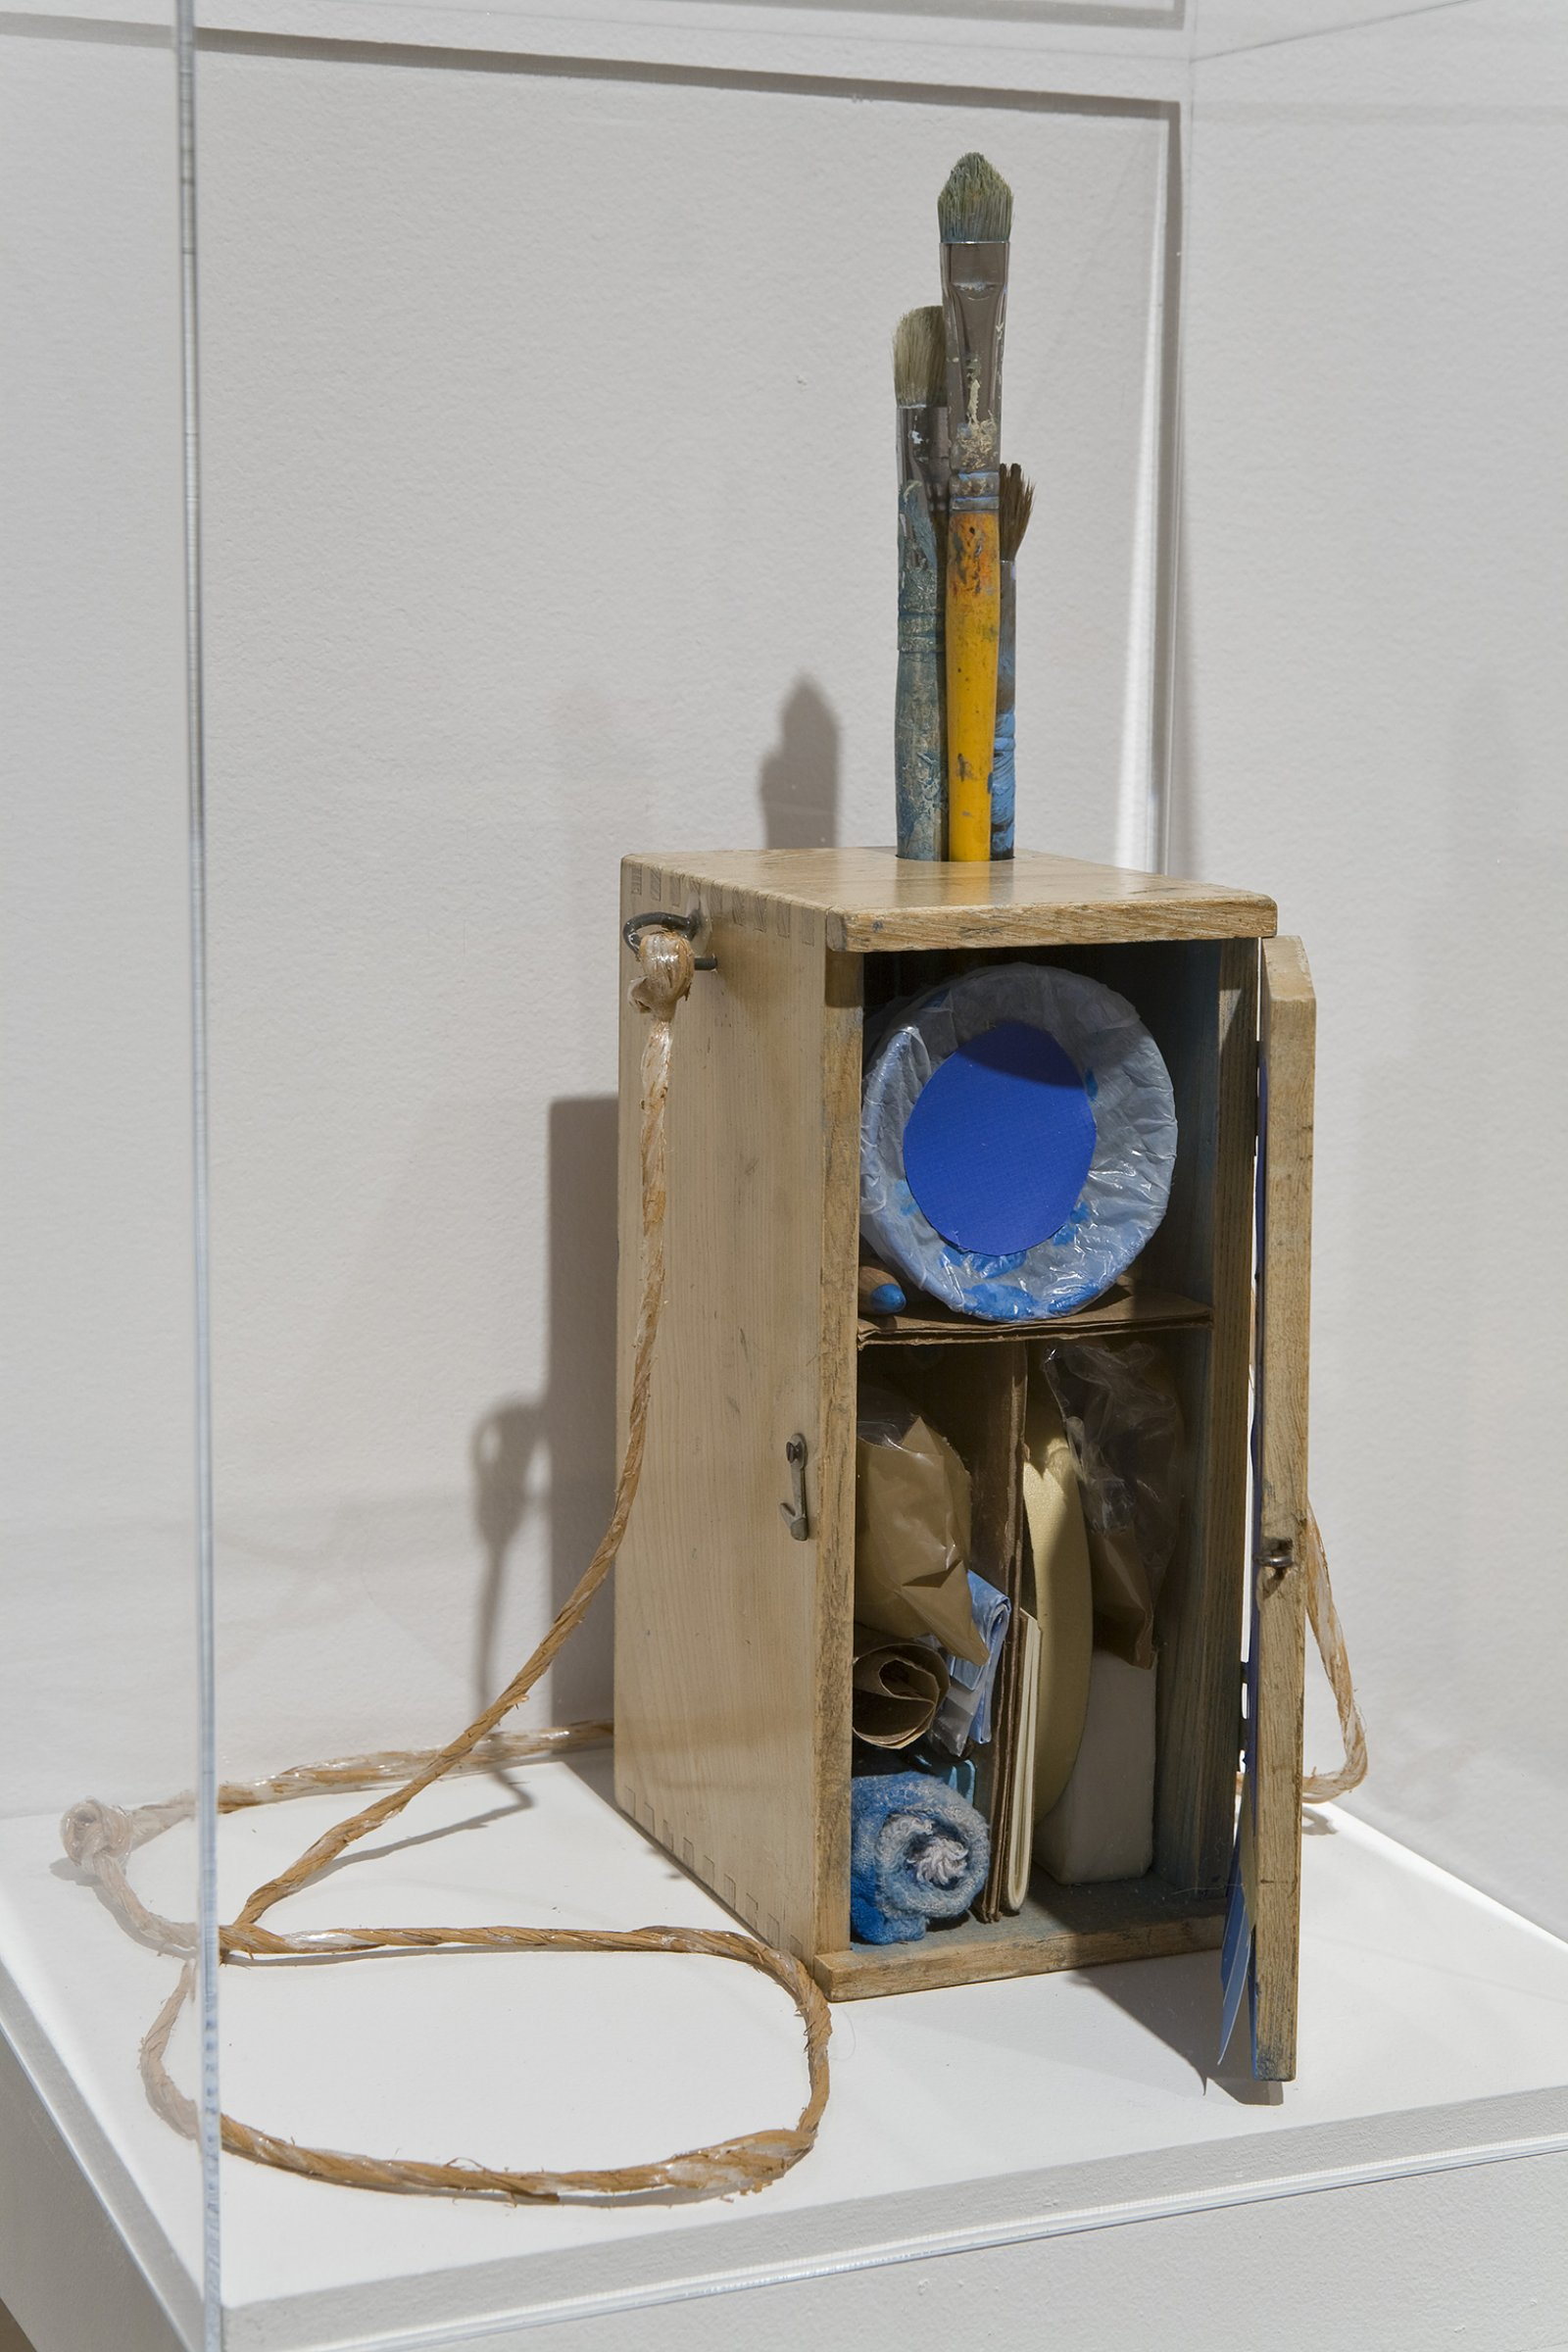 Geoffrey Farmer,Void Numbering Project (continuous), 1992, wooden box containing various materials such as paint, paintbrushes, masking tape and shelf with plexiglass top, dimensions variable